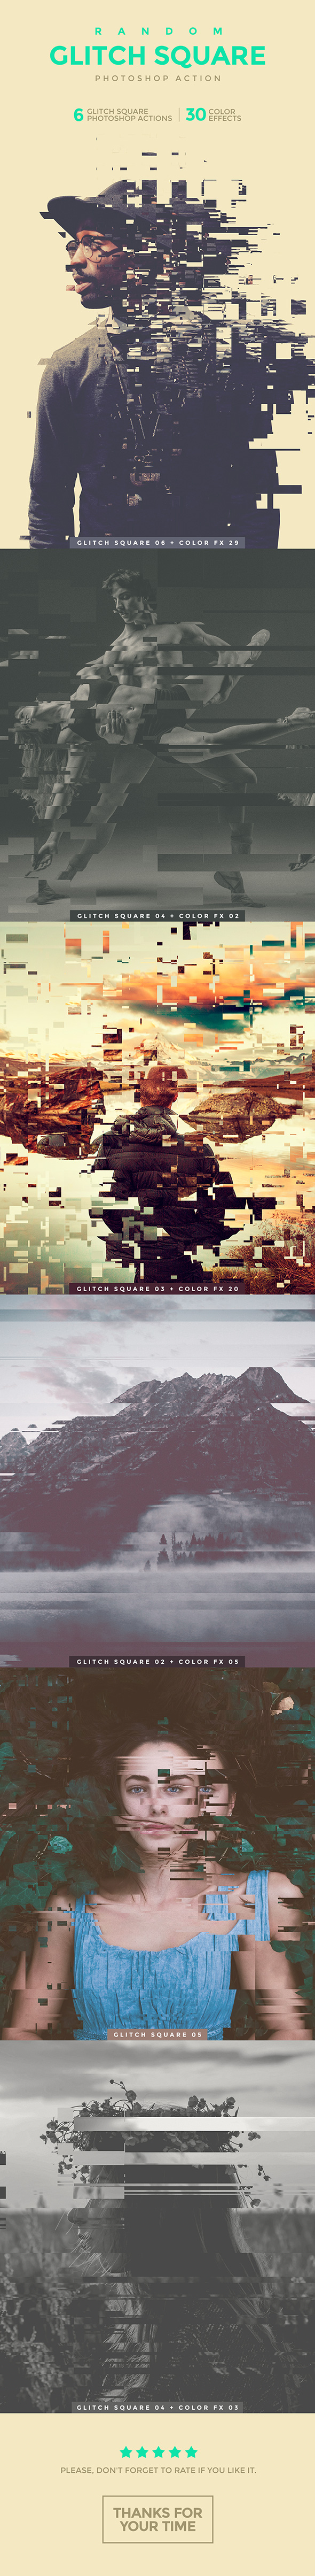 Random Glitch Square Photoshop Action - Photo Effects Actions